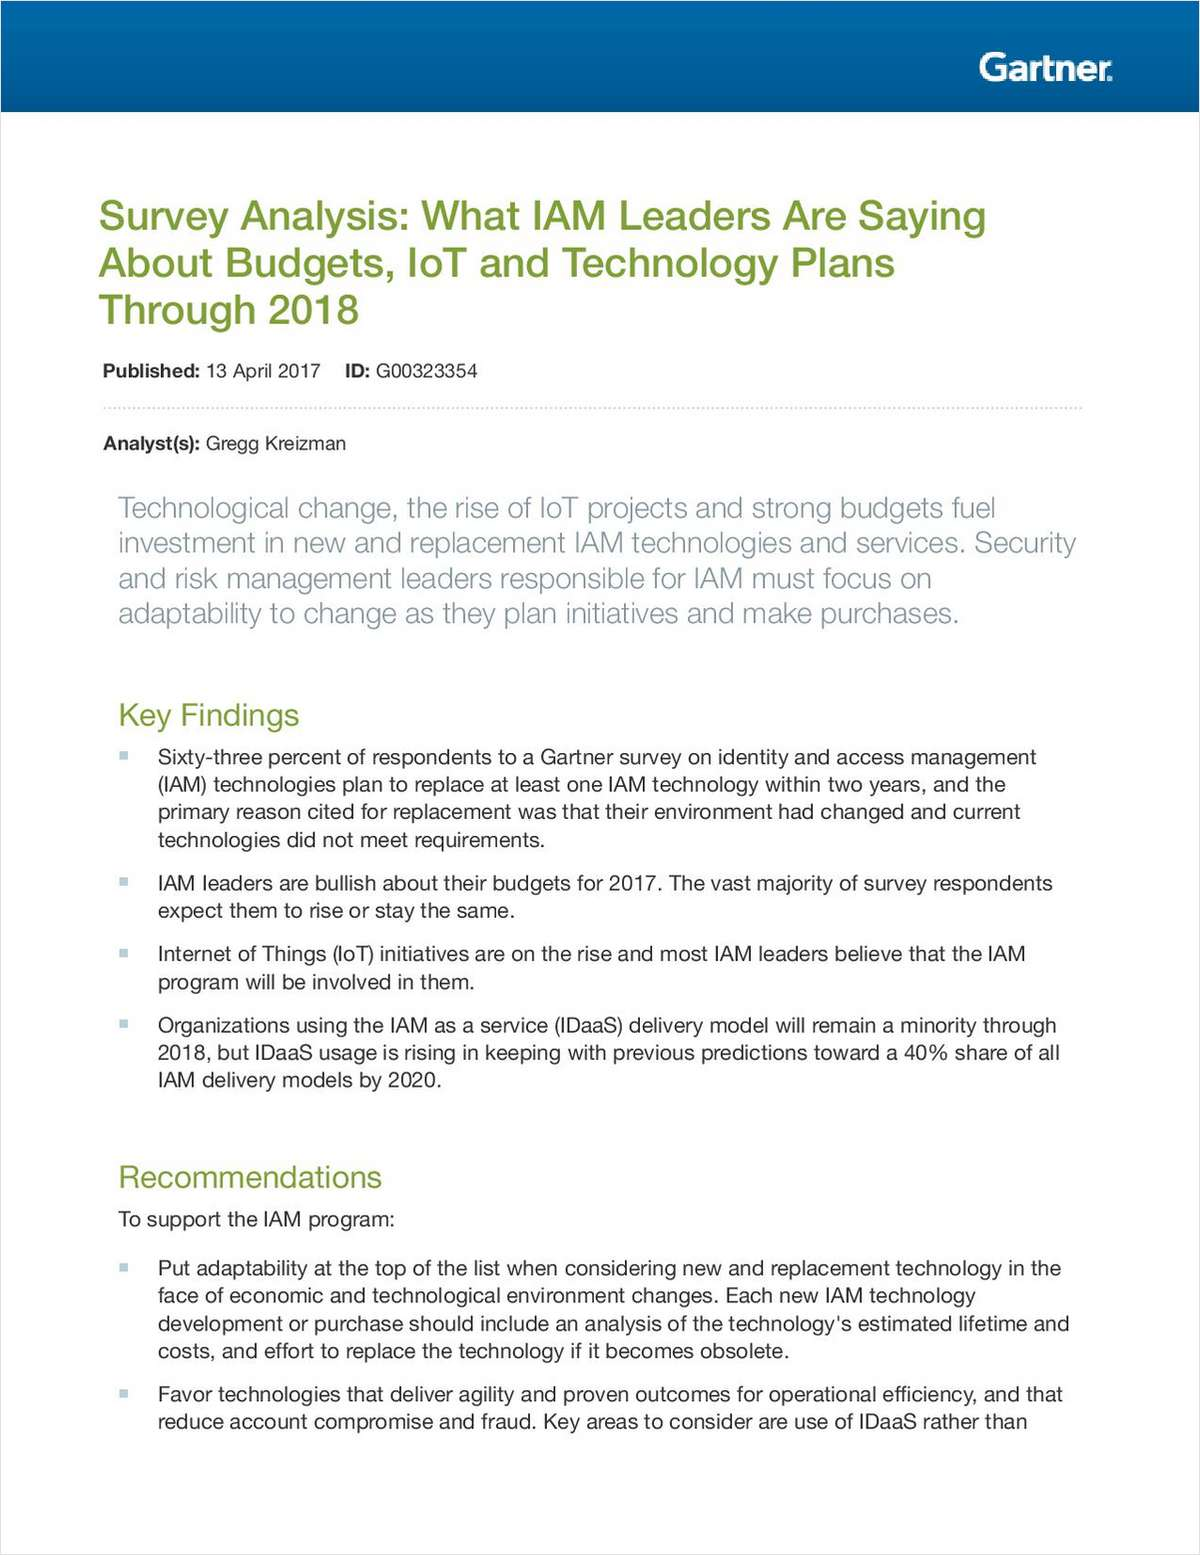 Survey Analysis: What IAM Leaders are Saying about Budget, IoT and Technology Plans Through 2018